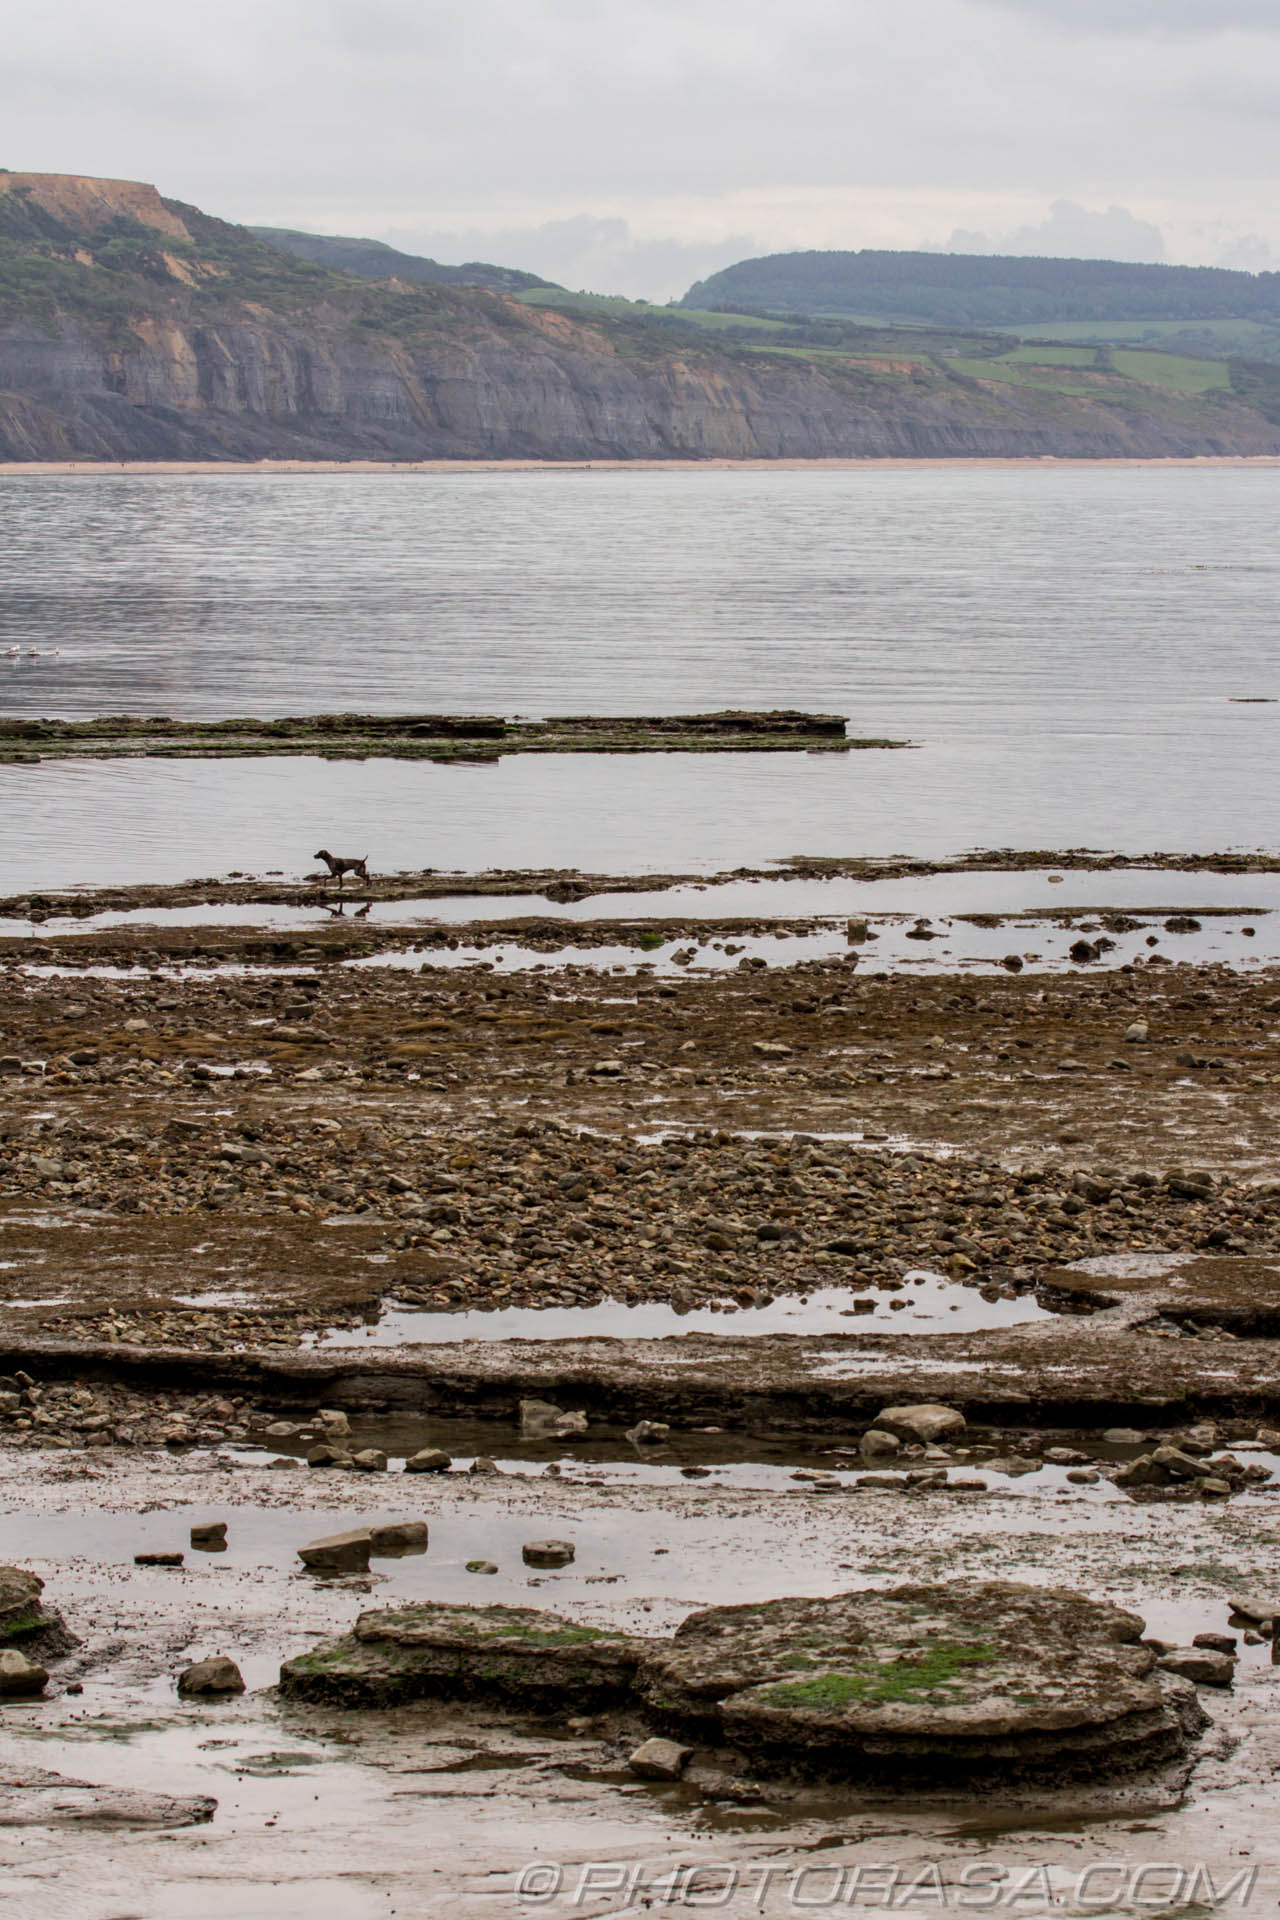 http://photorasa.com/walking-dog-jurassic-coast/rocky-old-beach-and-dog/